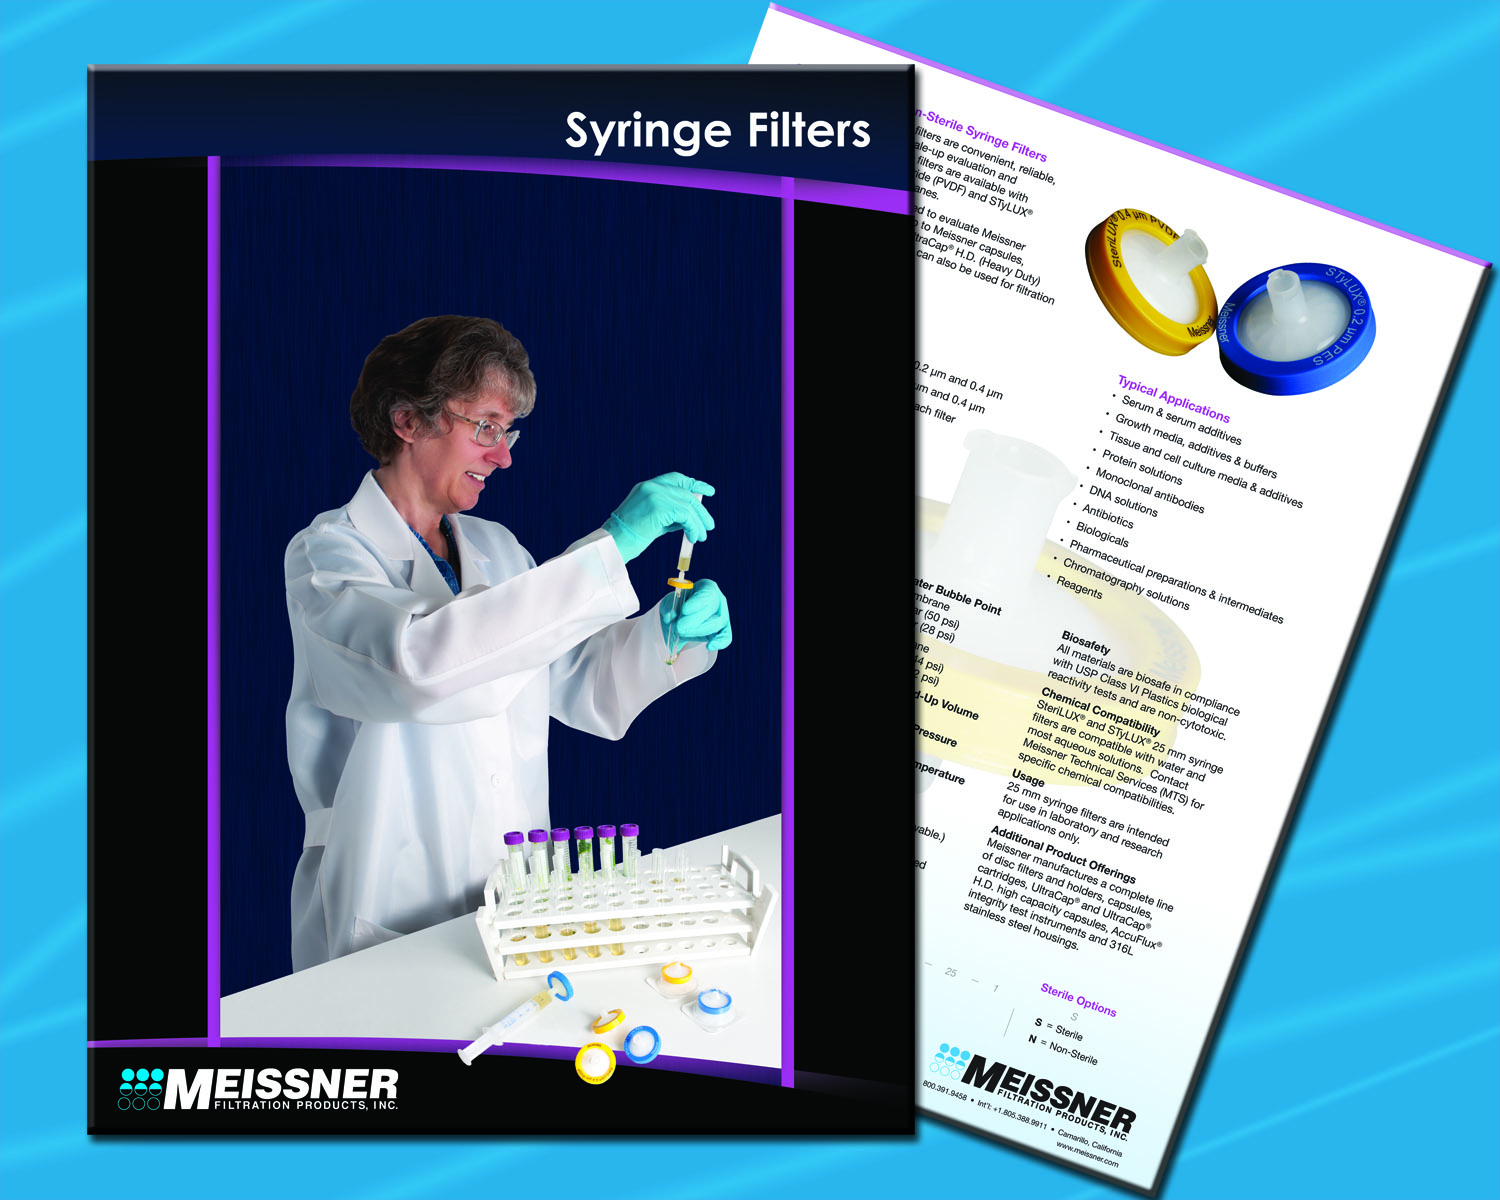 25 Mm Syringe Filters Brochure Now Available From Meissner